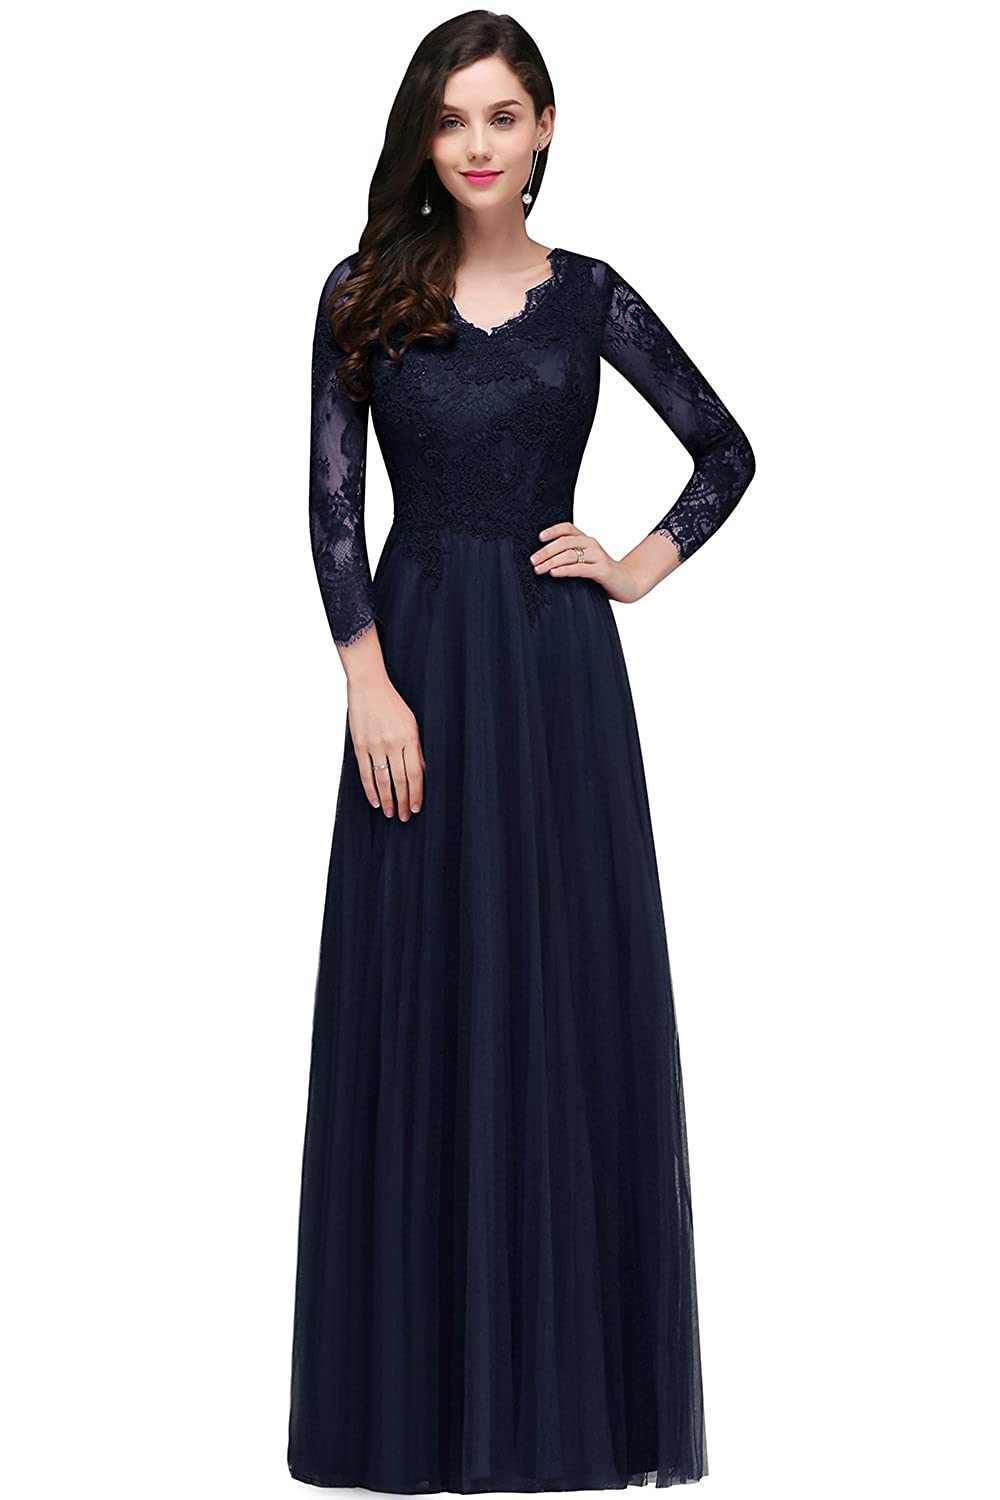 MisShow Womens Lace Long Sleeve V Neck Formal Evening Party Long Maxi Dress